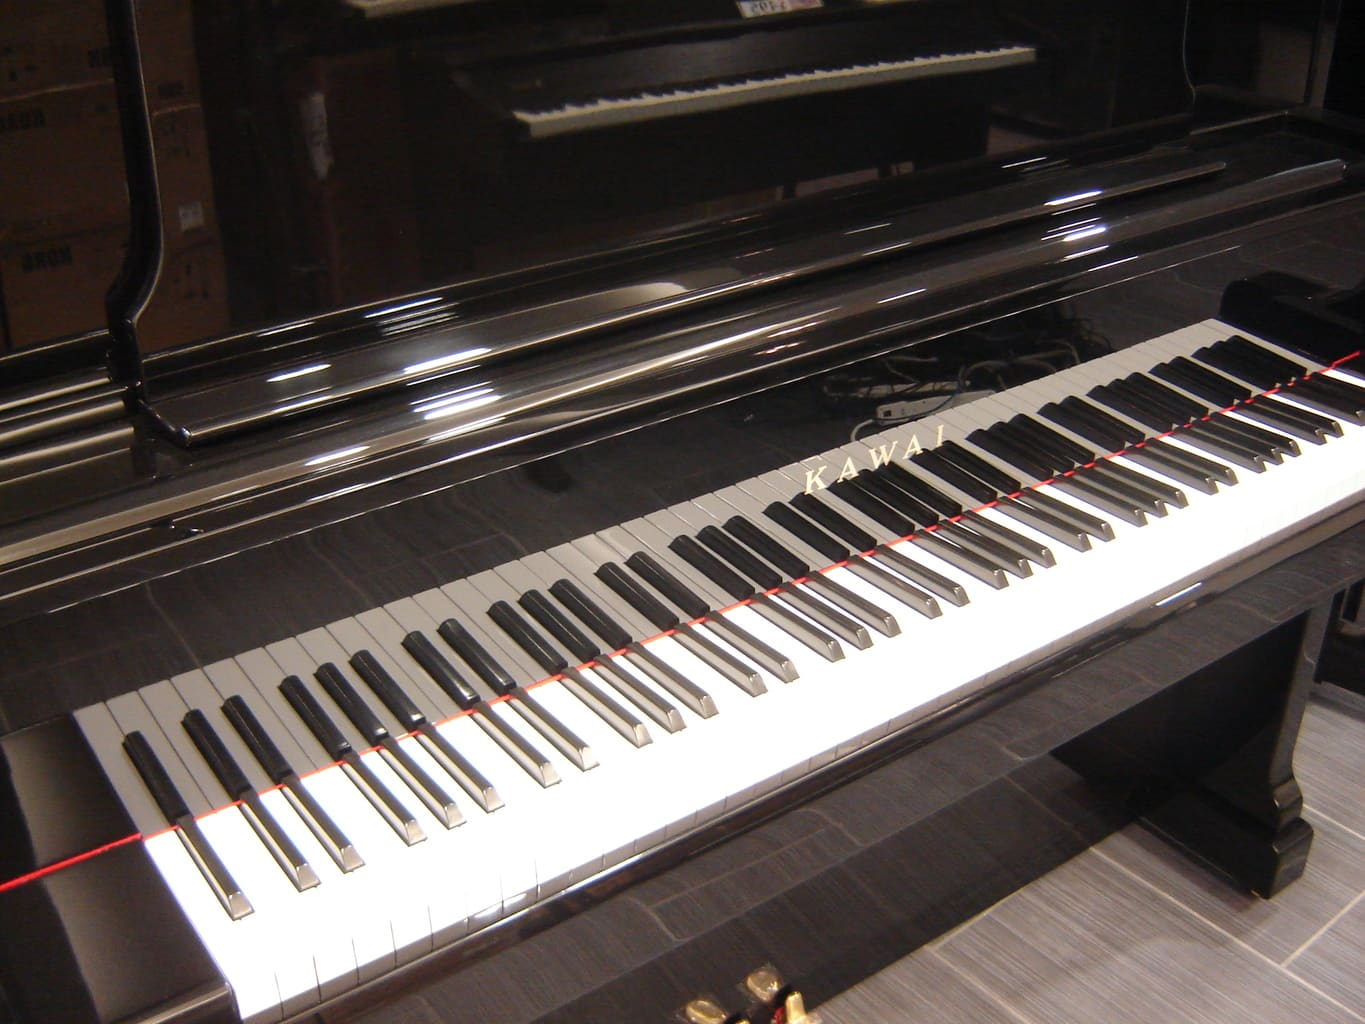 Used Kawai Piano US60, Best Prices in Canada - MERRIAM pianos